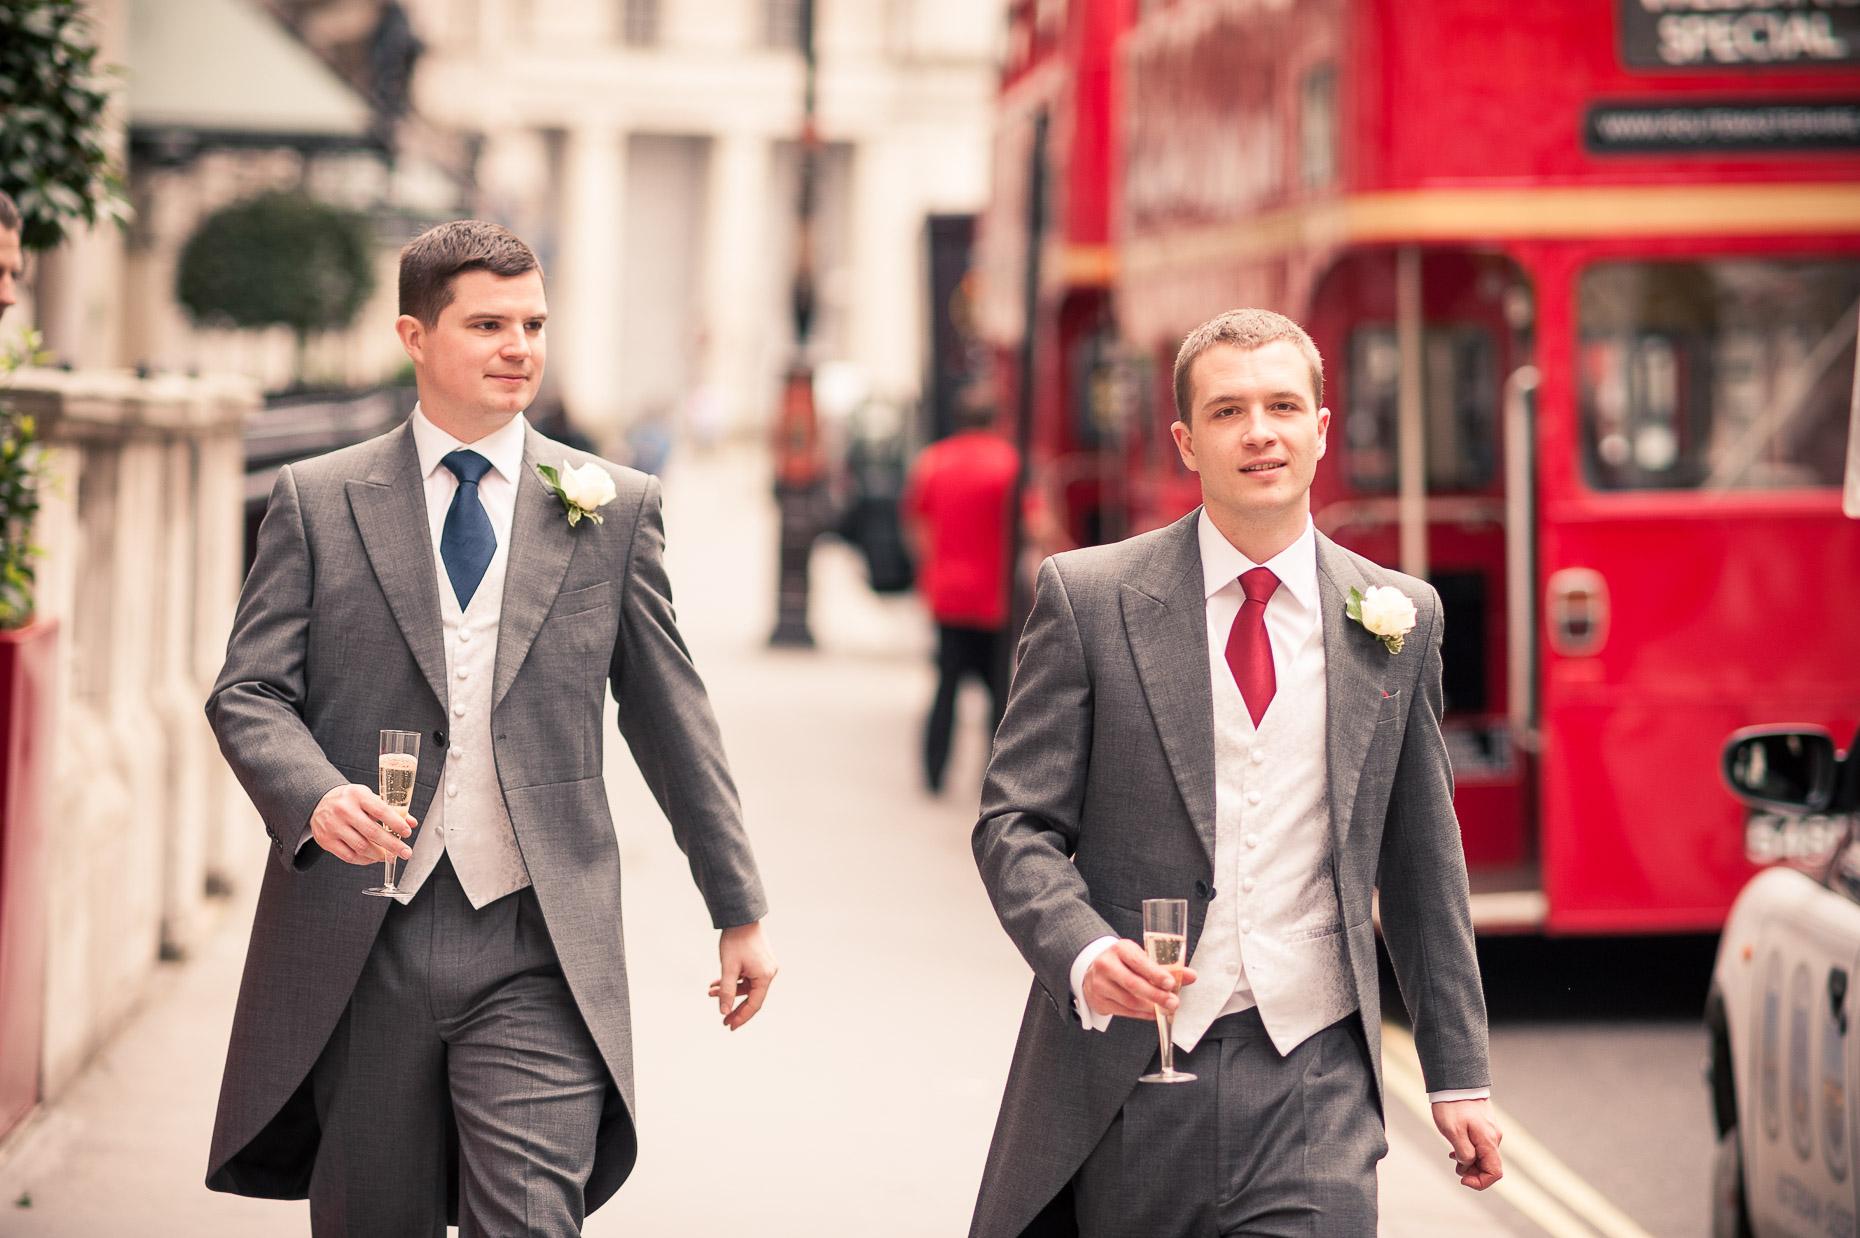 chris-red-double-decker-bus-london-street-reportage-gay-wedding-london-14